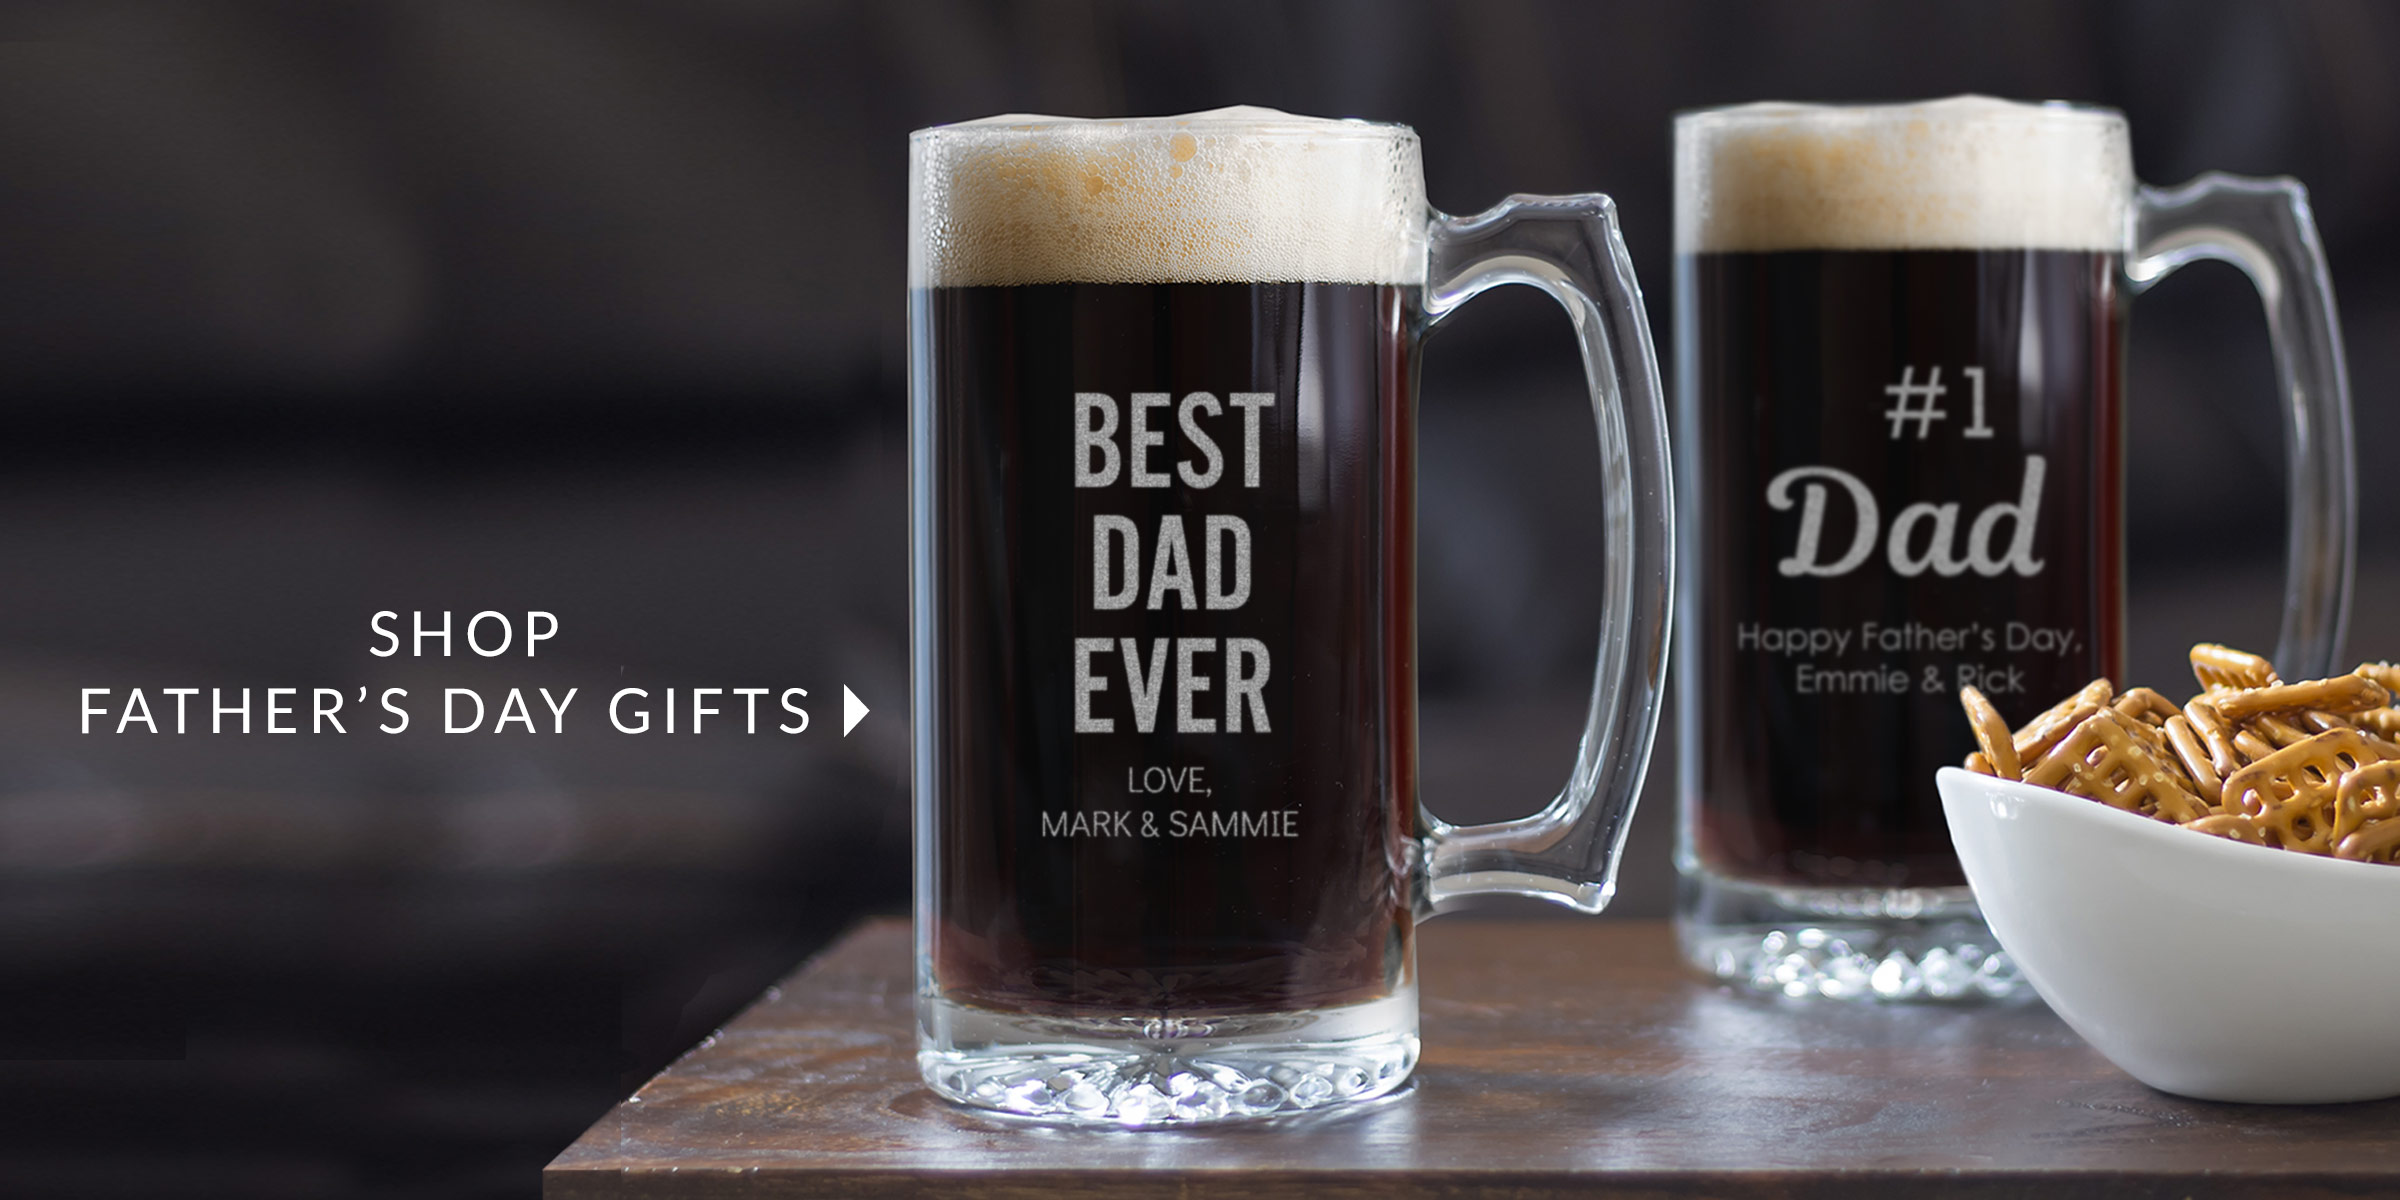 Shop Fathers Day Gifts